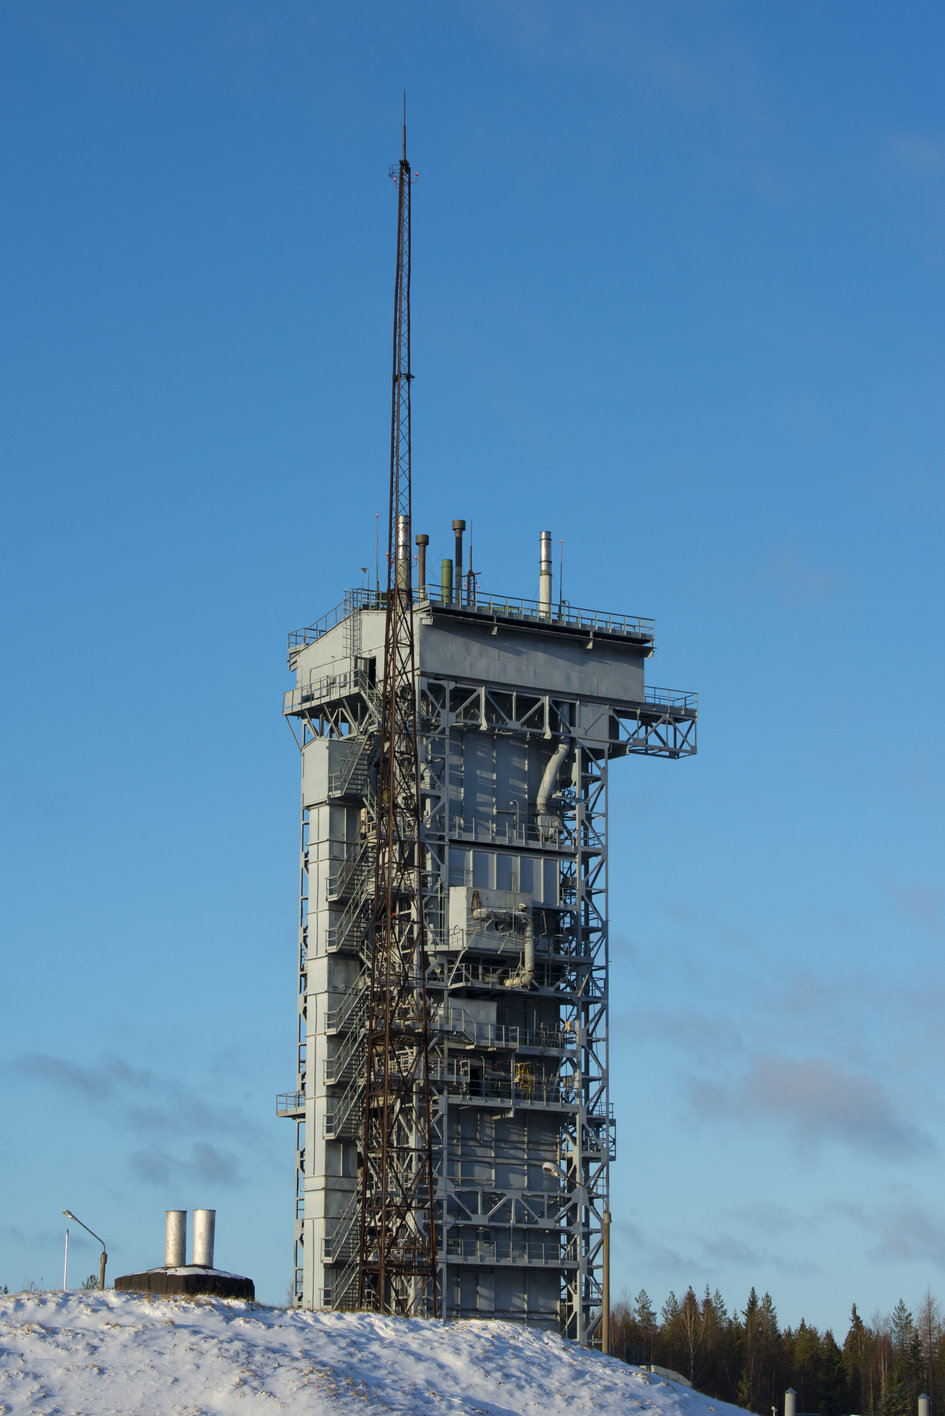 Rockot launch tower at the Plesetsk Cosmodrome